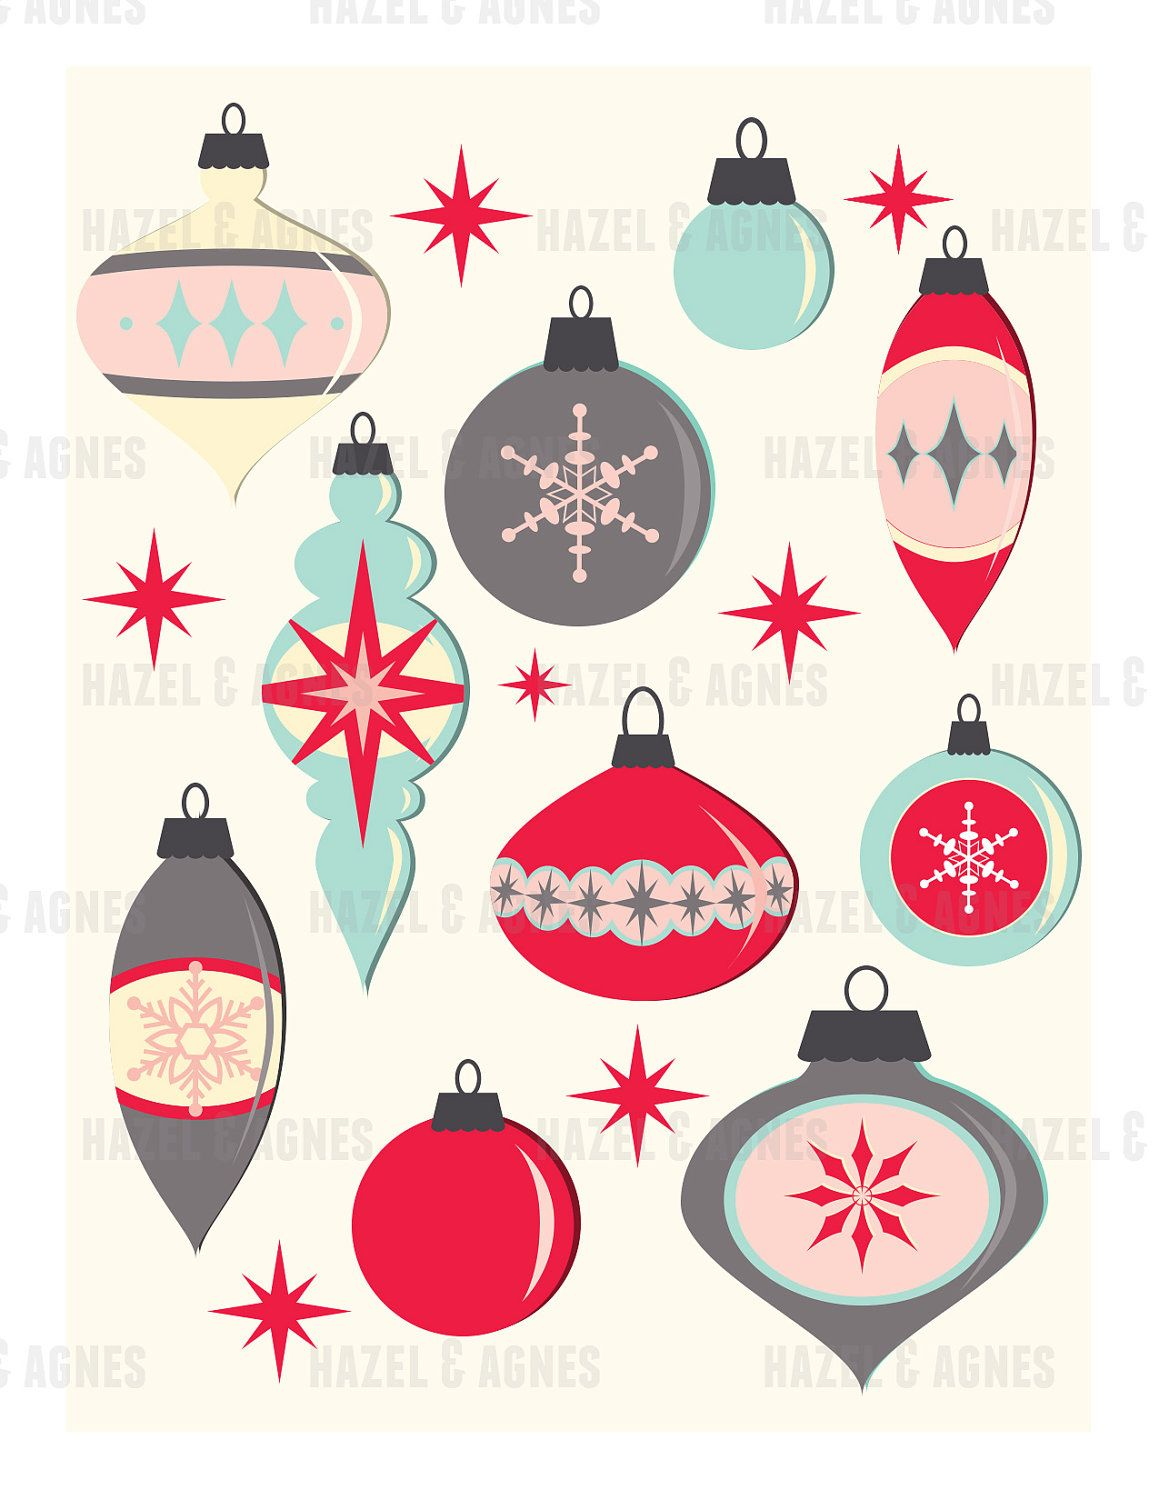 Retro Ornaments Printable Christmas Card Digital Download Retro Ornaments Holiday Crafts Christmas Vintage Christmas Cards